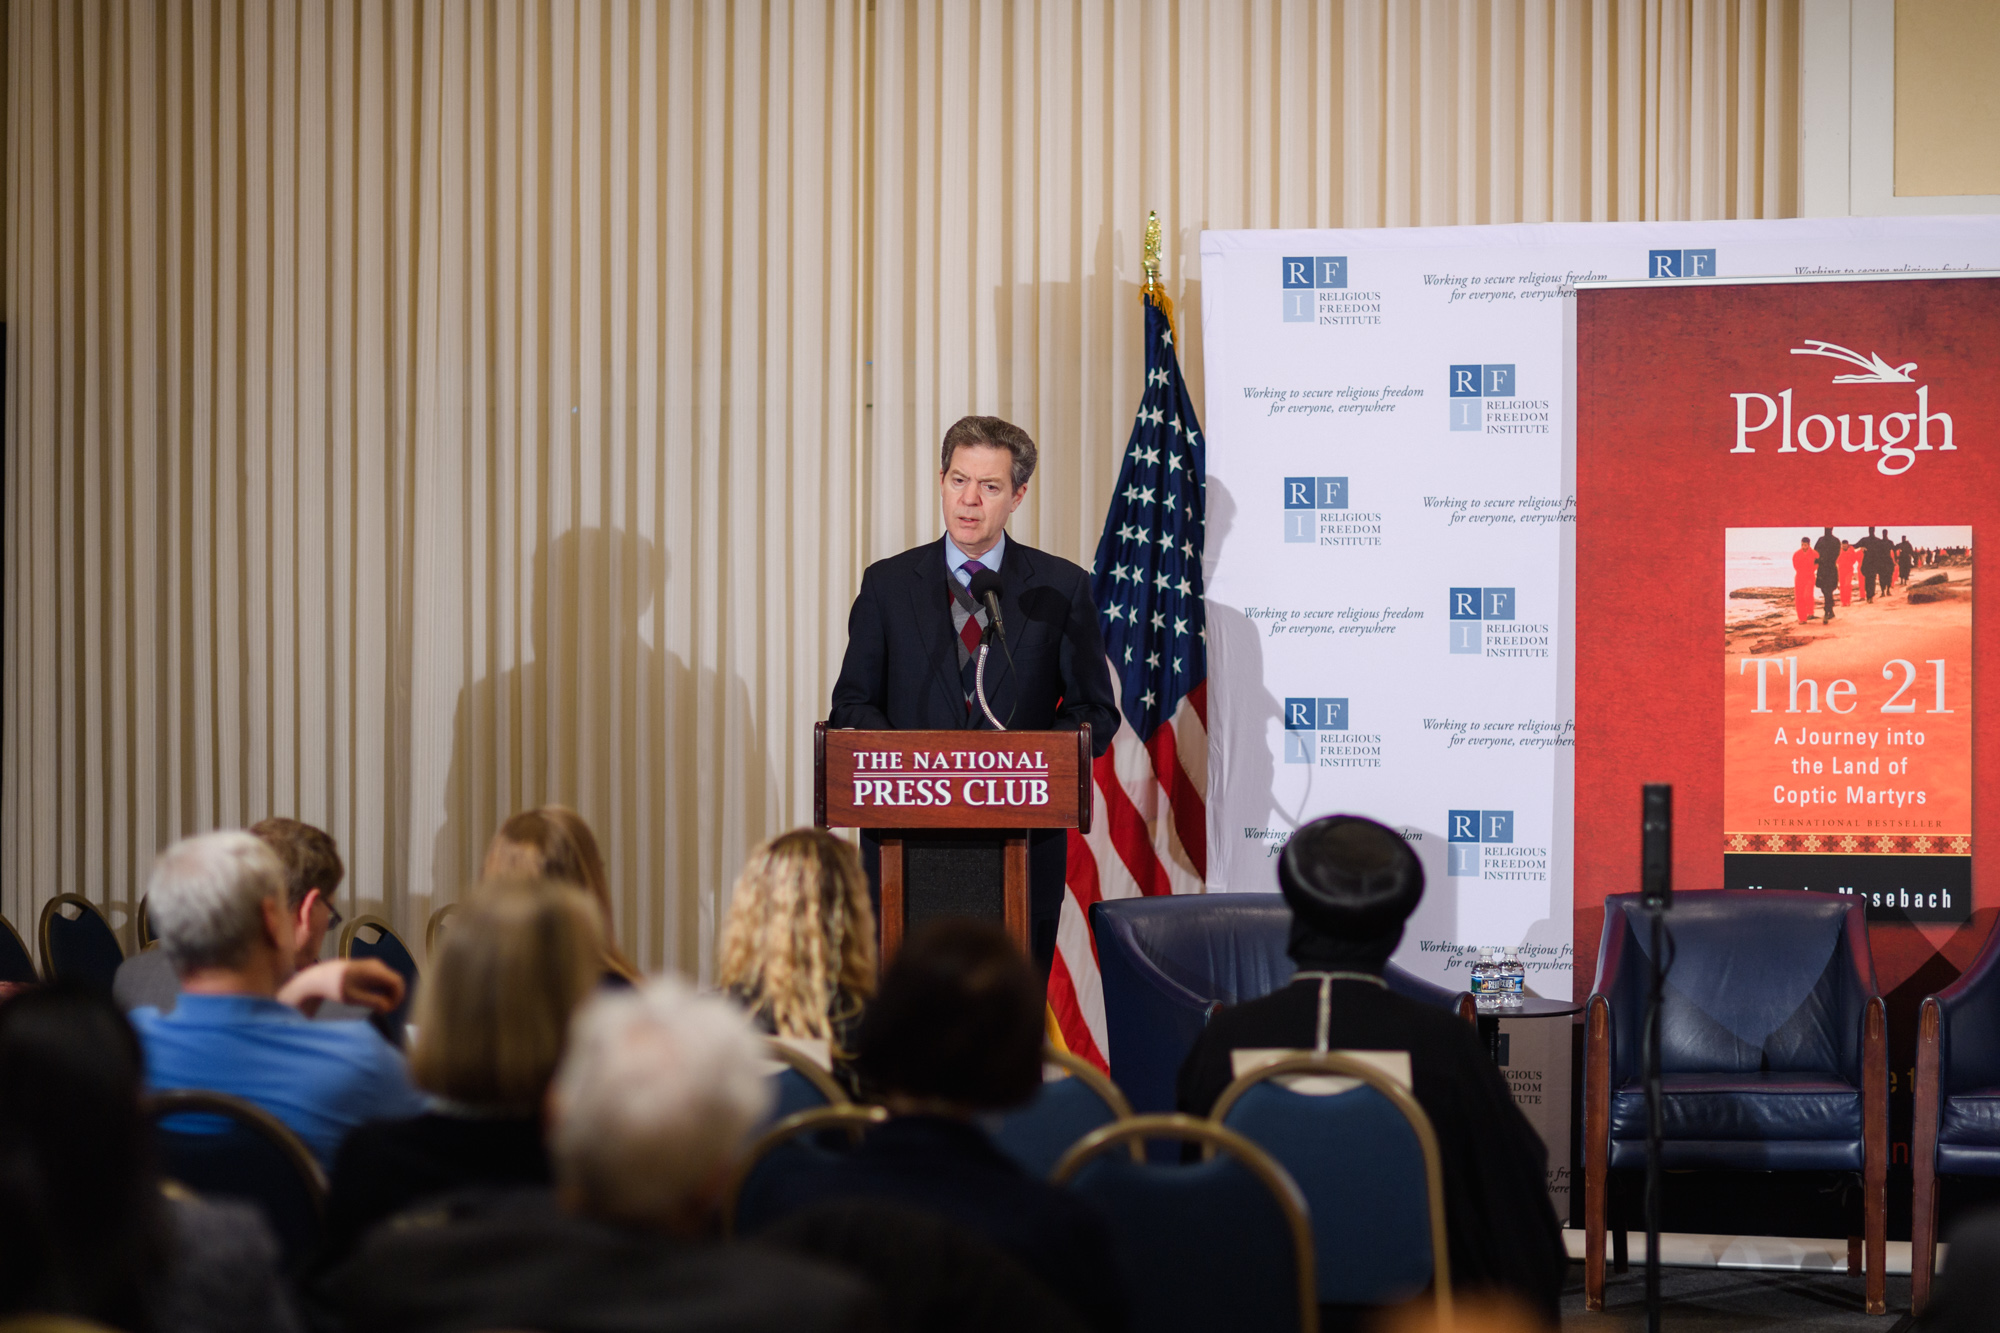 100 - February 12th 2019 Religious Freedom Institute at National Press Club - Photo Nathan Mitchell.jpg